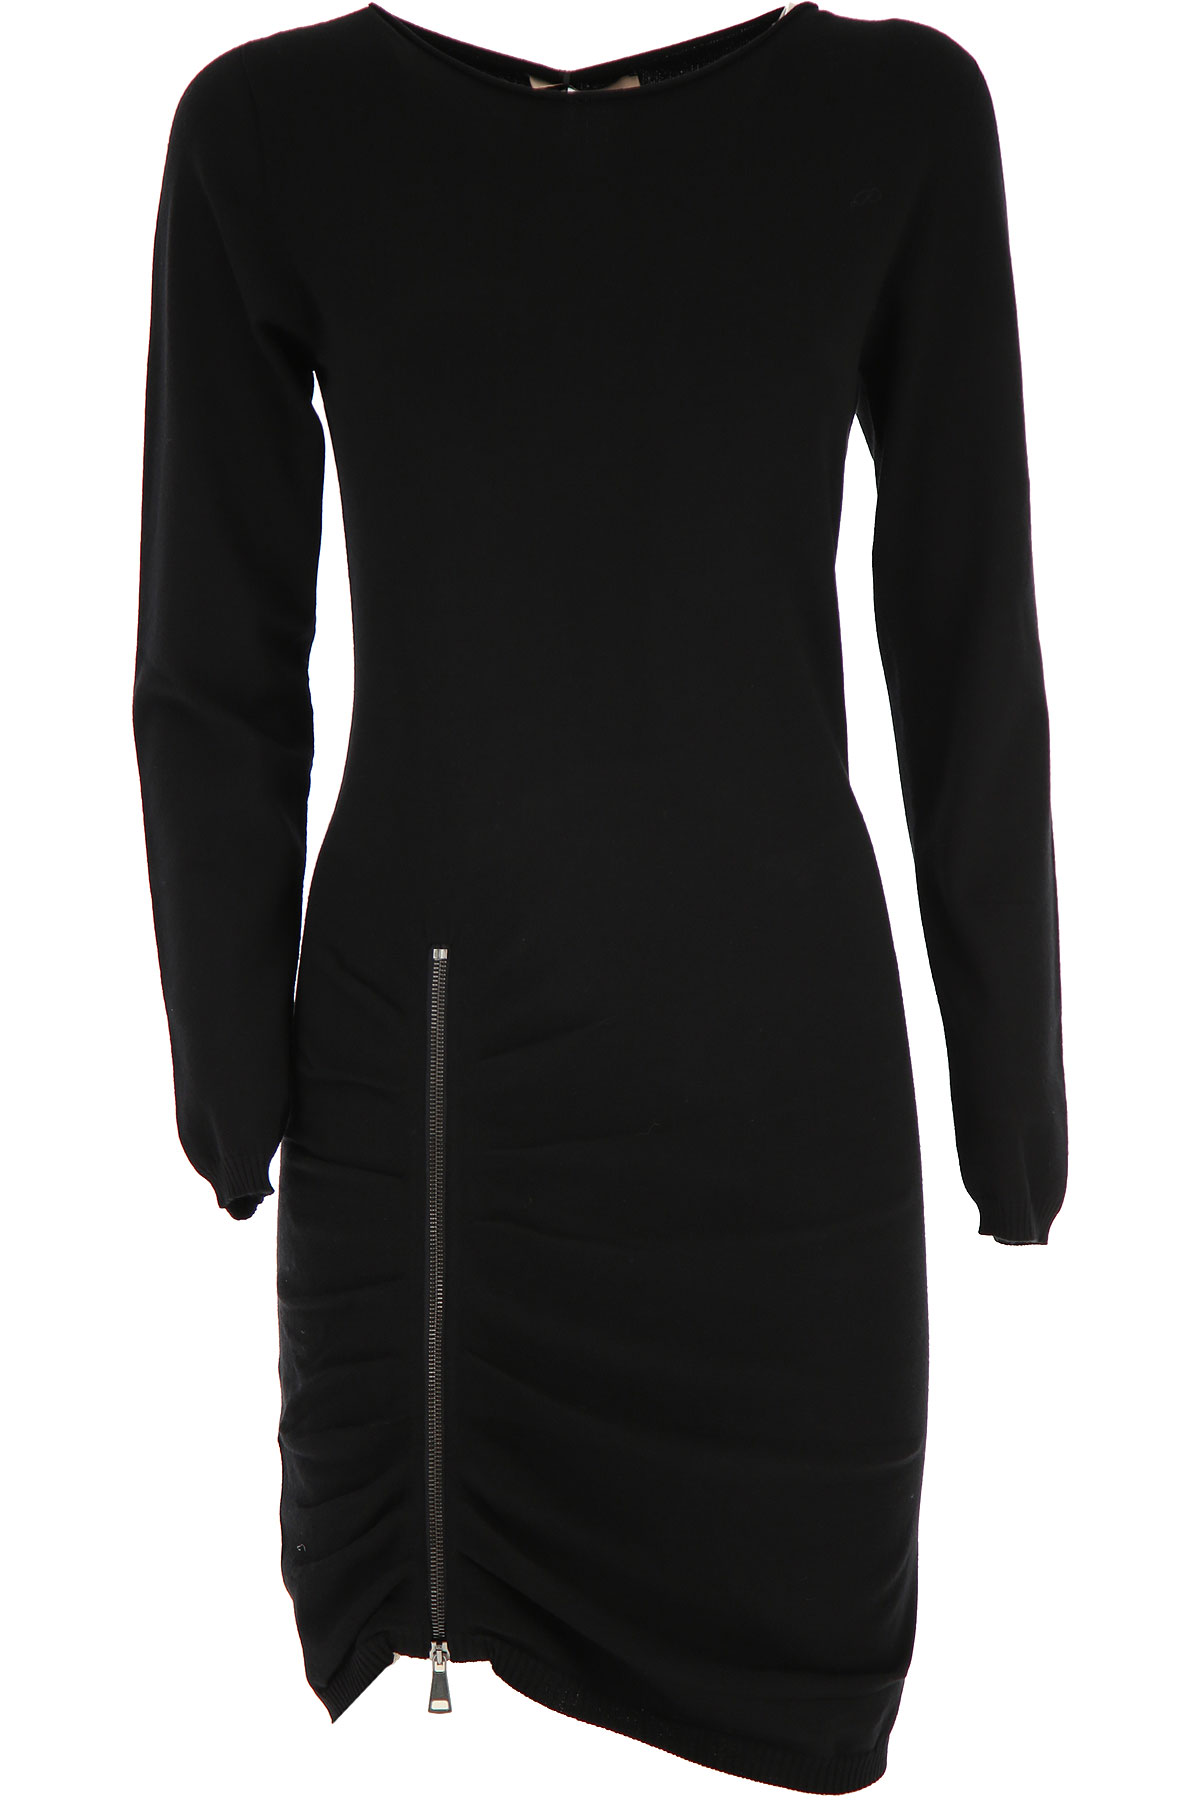 Twin Set by Simona Barbieri Dress for Women, Evening Cocktail Party On Sale, Black, Viscose, 2019, S